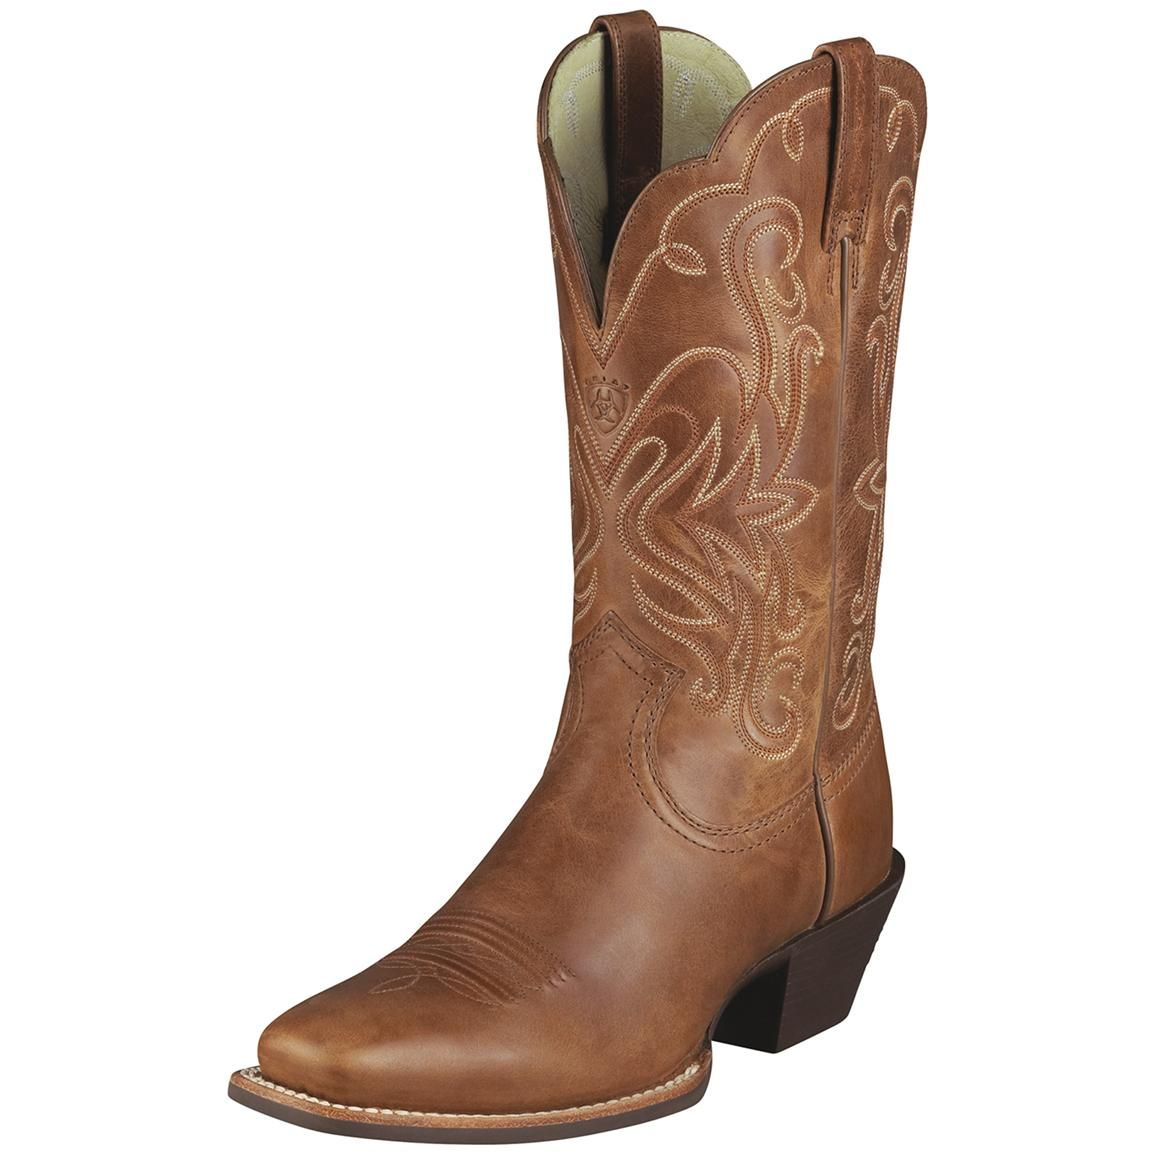 17 Best images about Cowboy boots on Pinterest | Le'veon bell ...